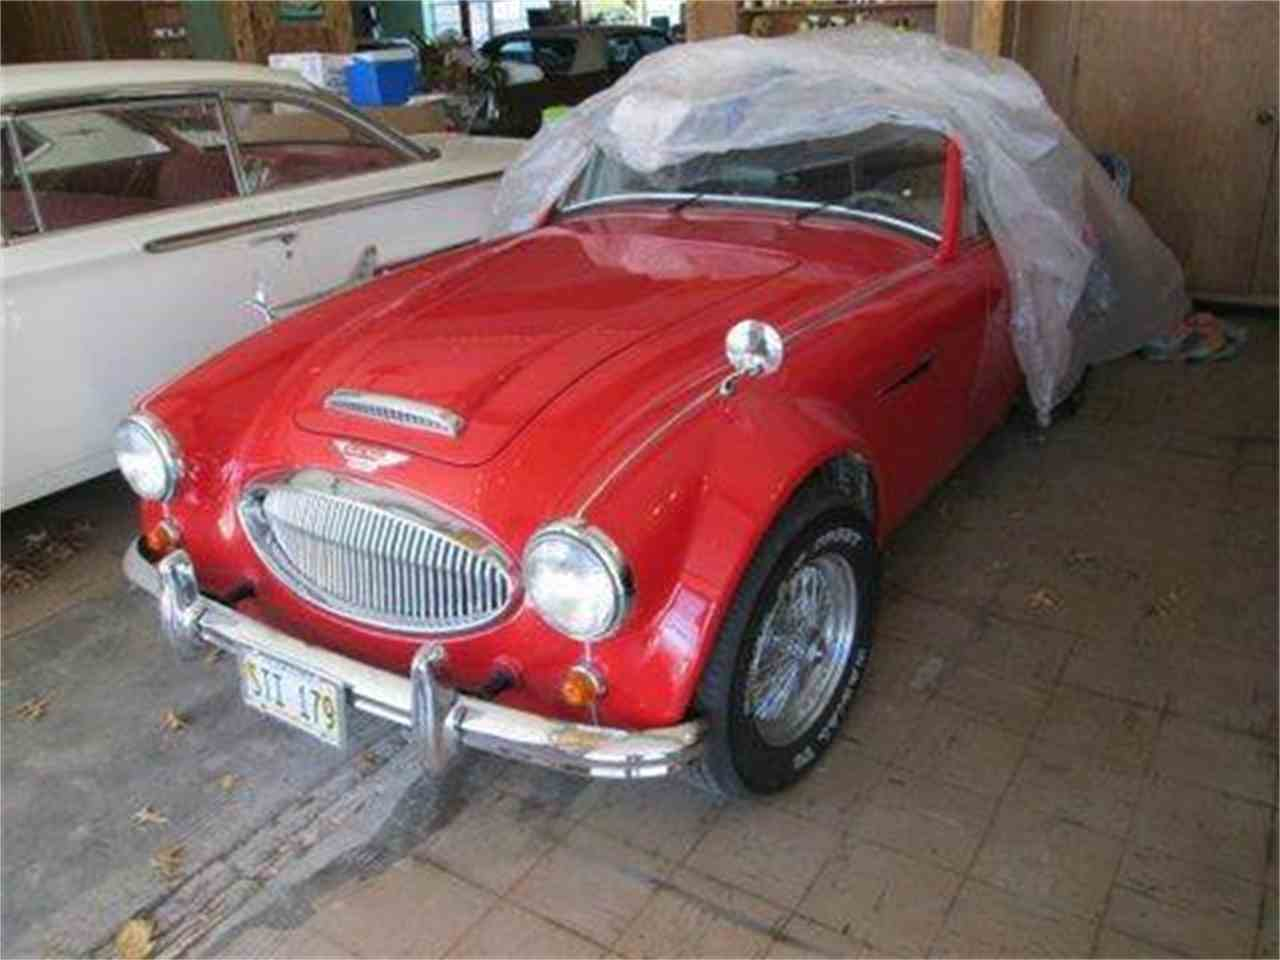 1967 austin healey 3000 sebring kit car for sale cc 1011295. Black Bedroom Furniture Sets. Home Design Ideas